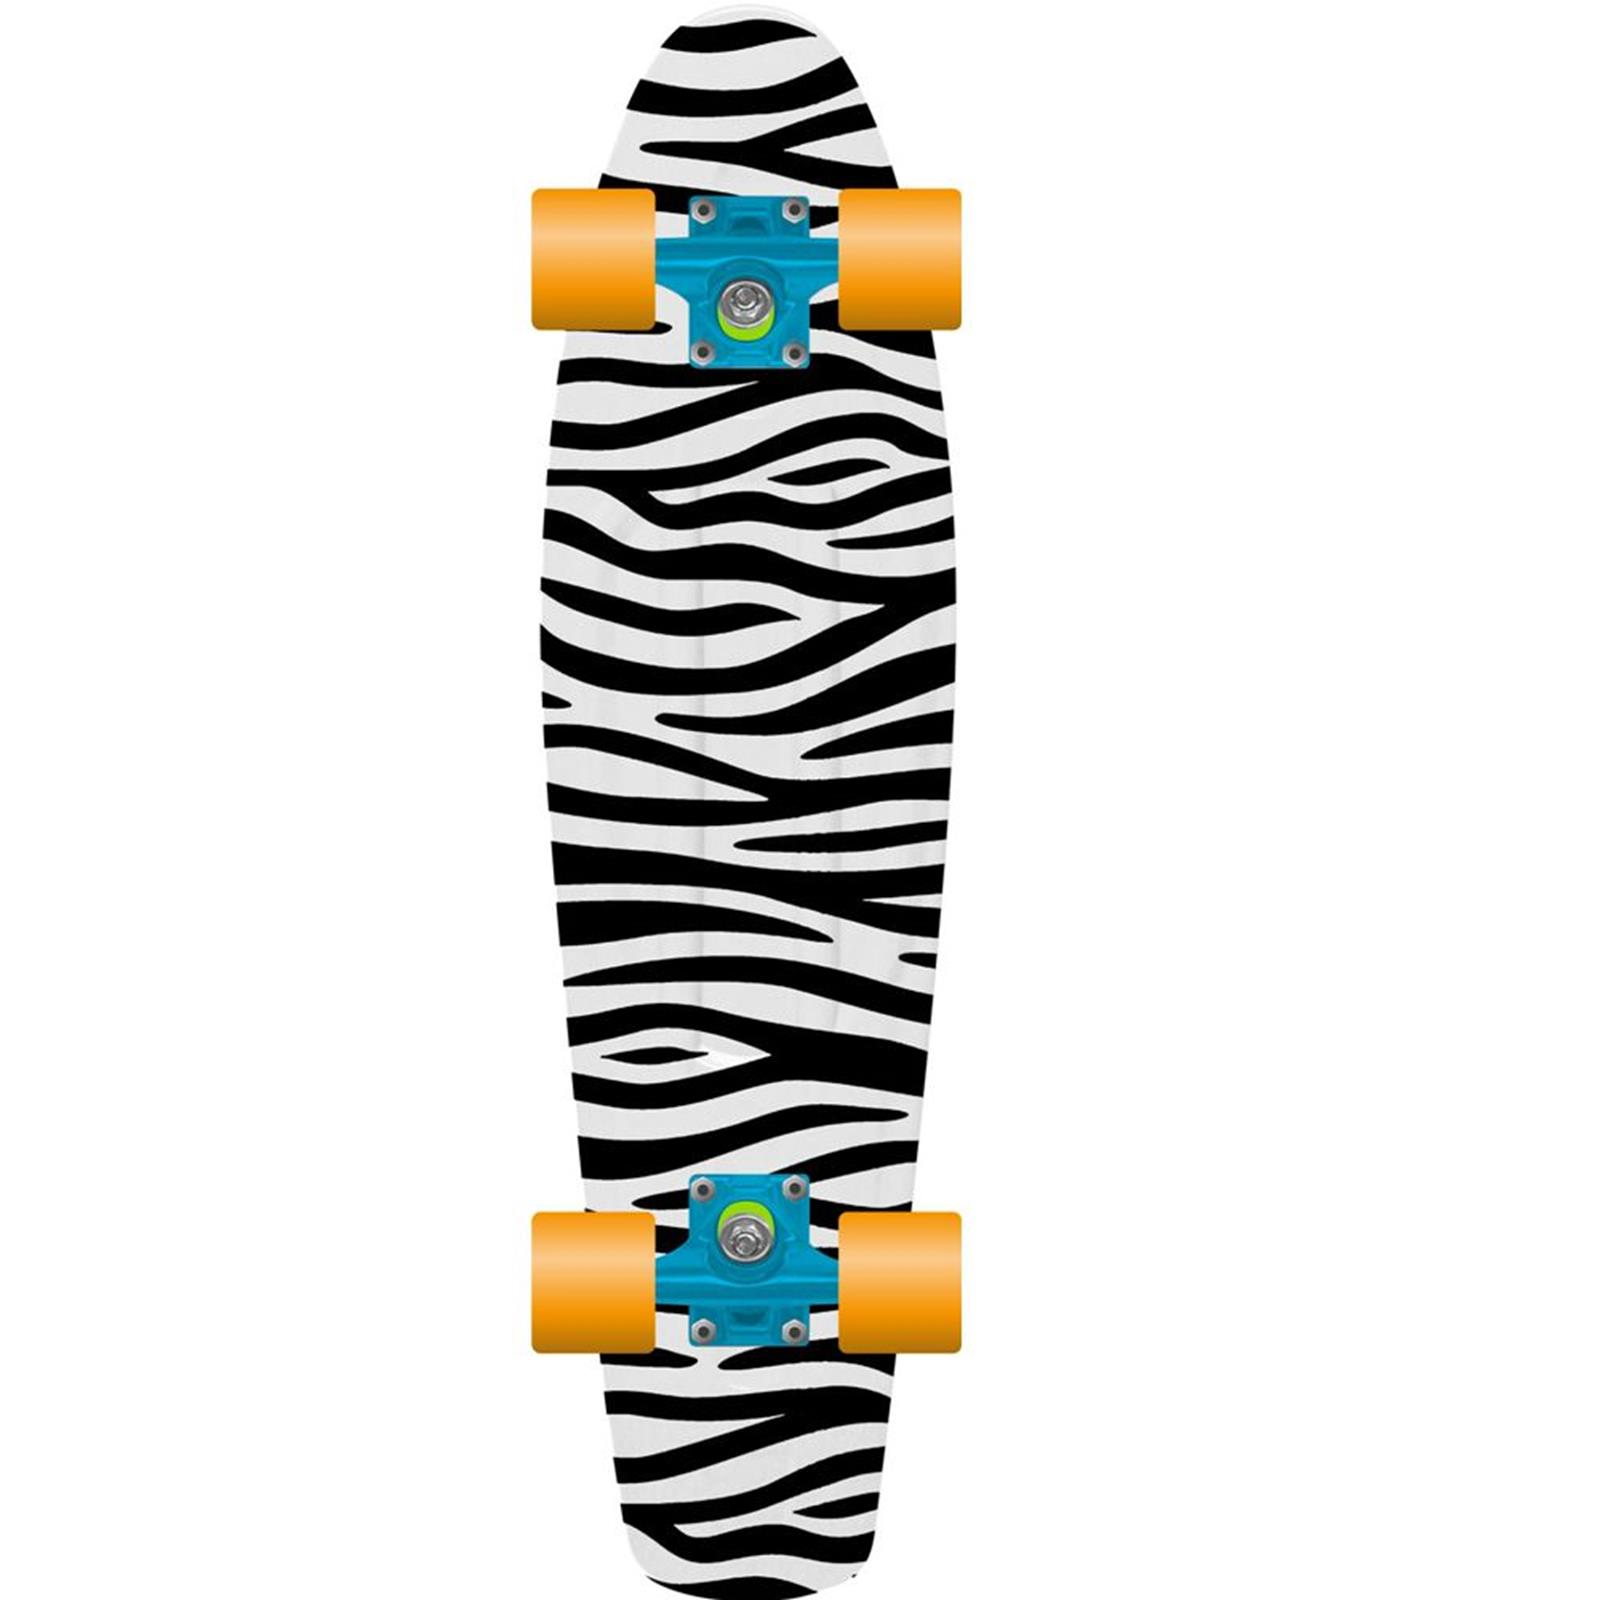 PROHIBITION Retro Plastic Skateboard 28 Zebra